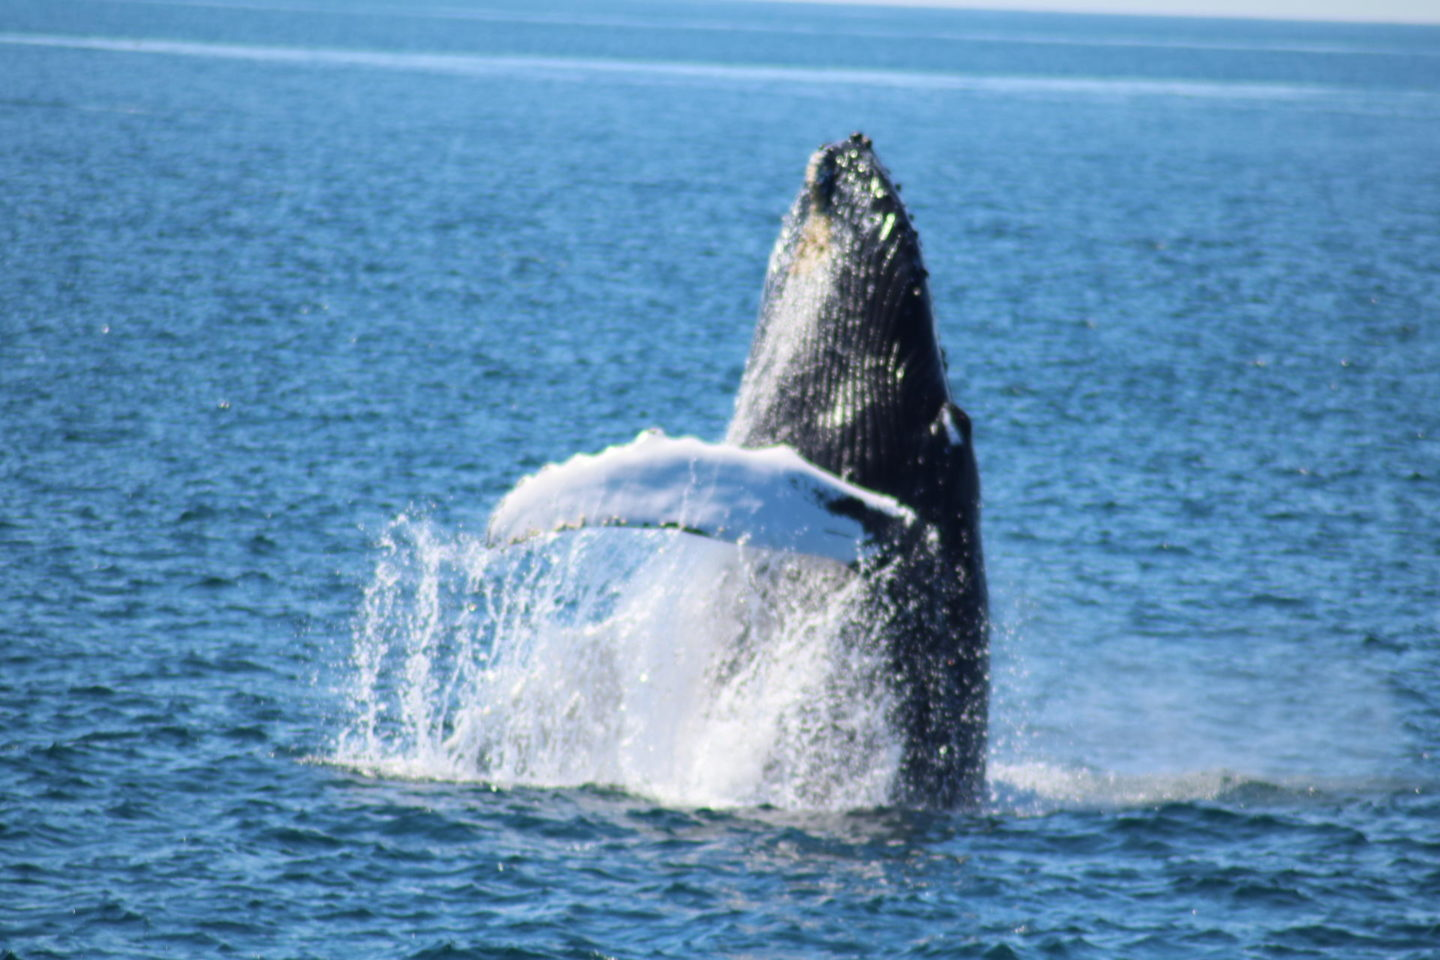 Whale Watching// Whale Breach in Cape Cod